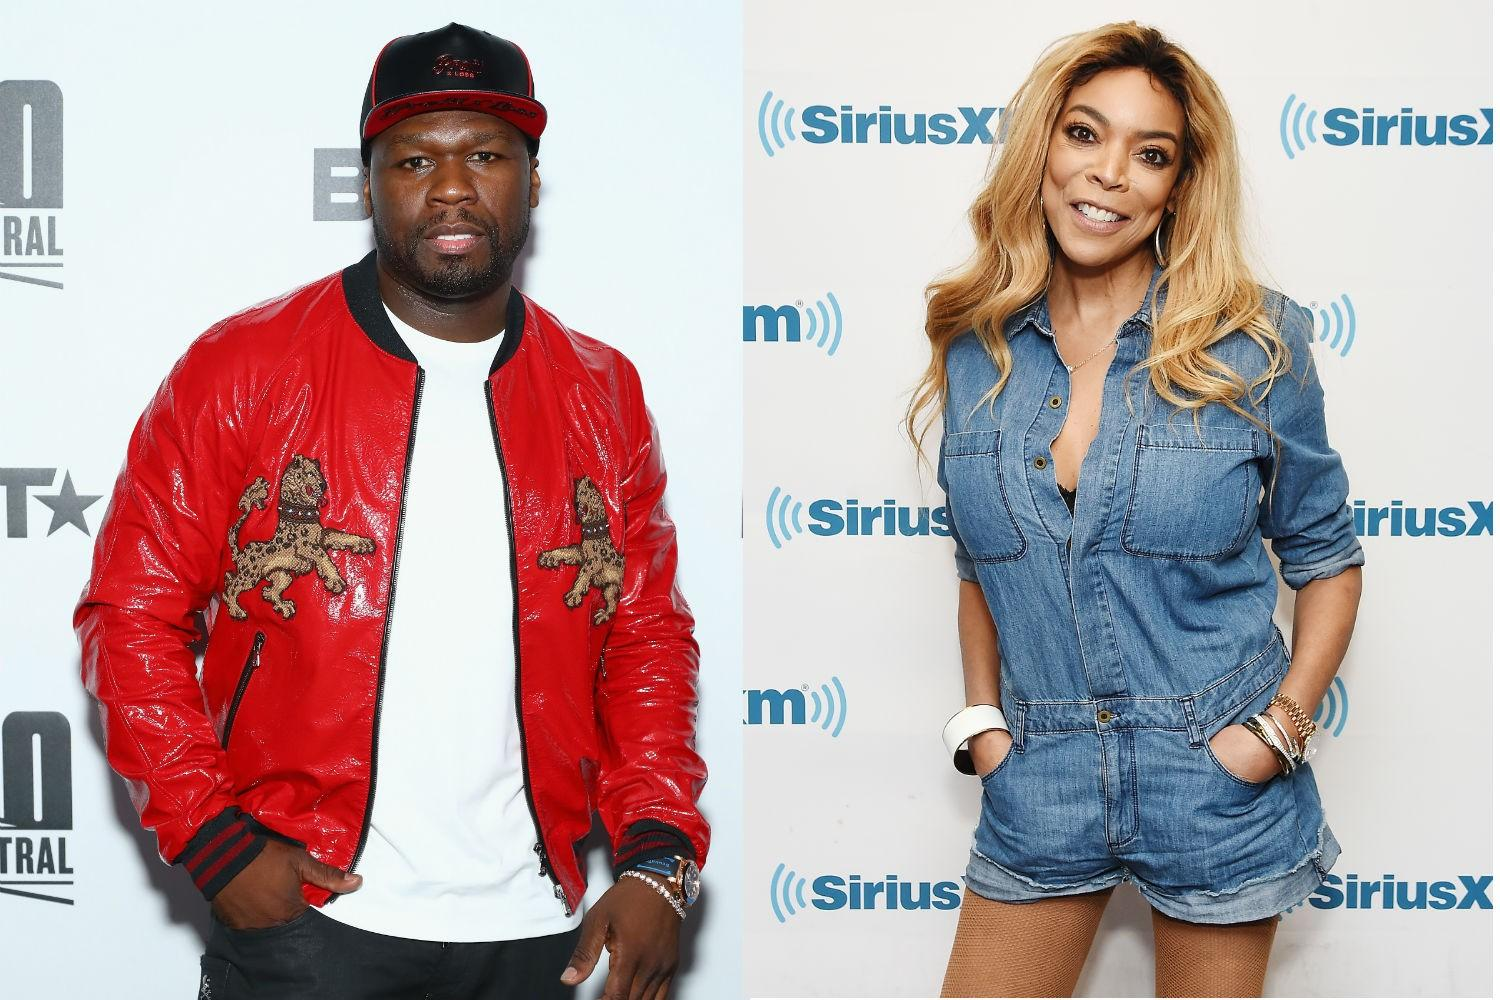 50 Cent Mocks Wendy Williams' Looks Once Again - Compares Her To E.T.